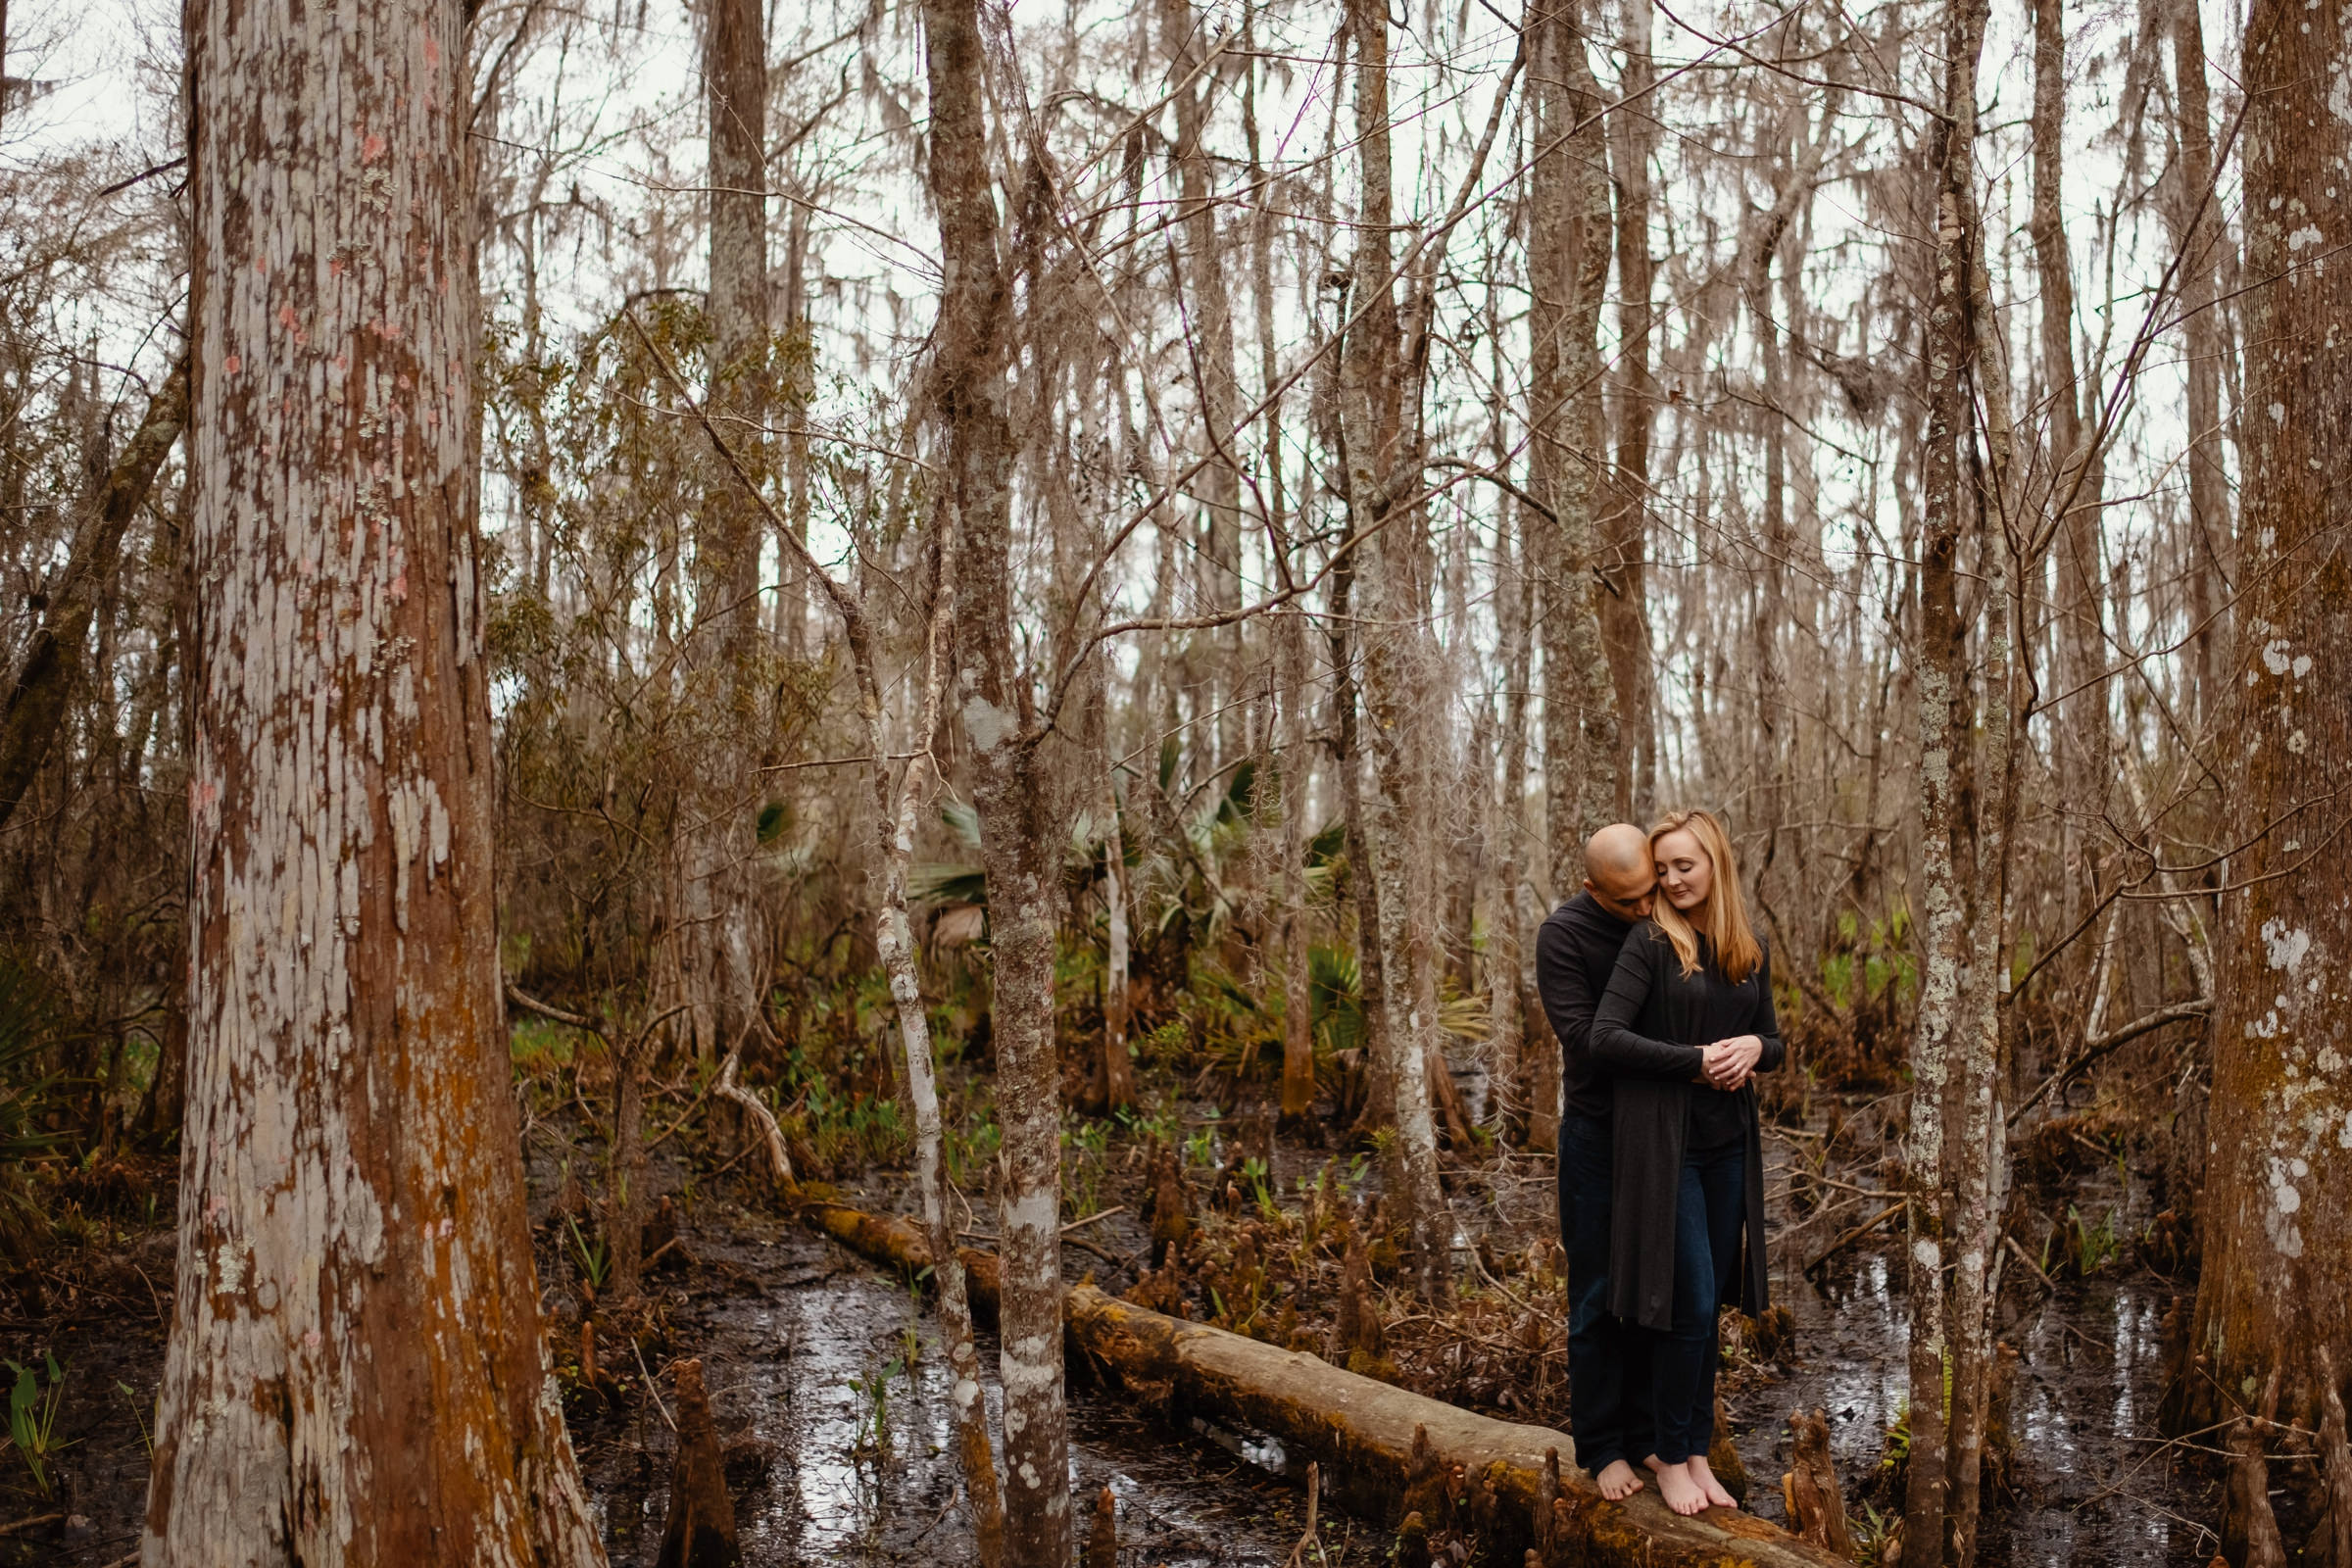 Portrait of couple in Bayou - photo by Dark Roux